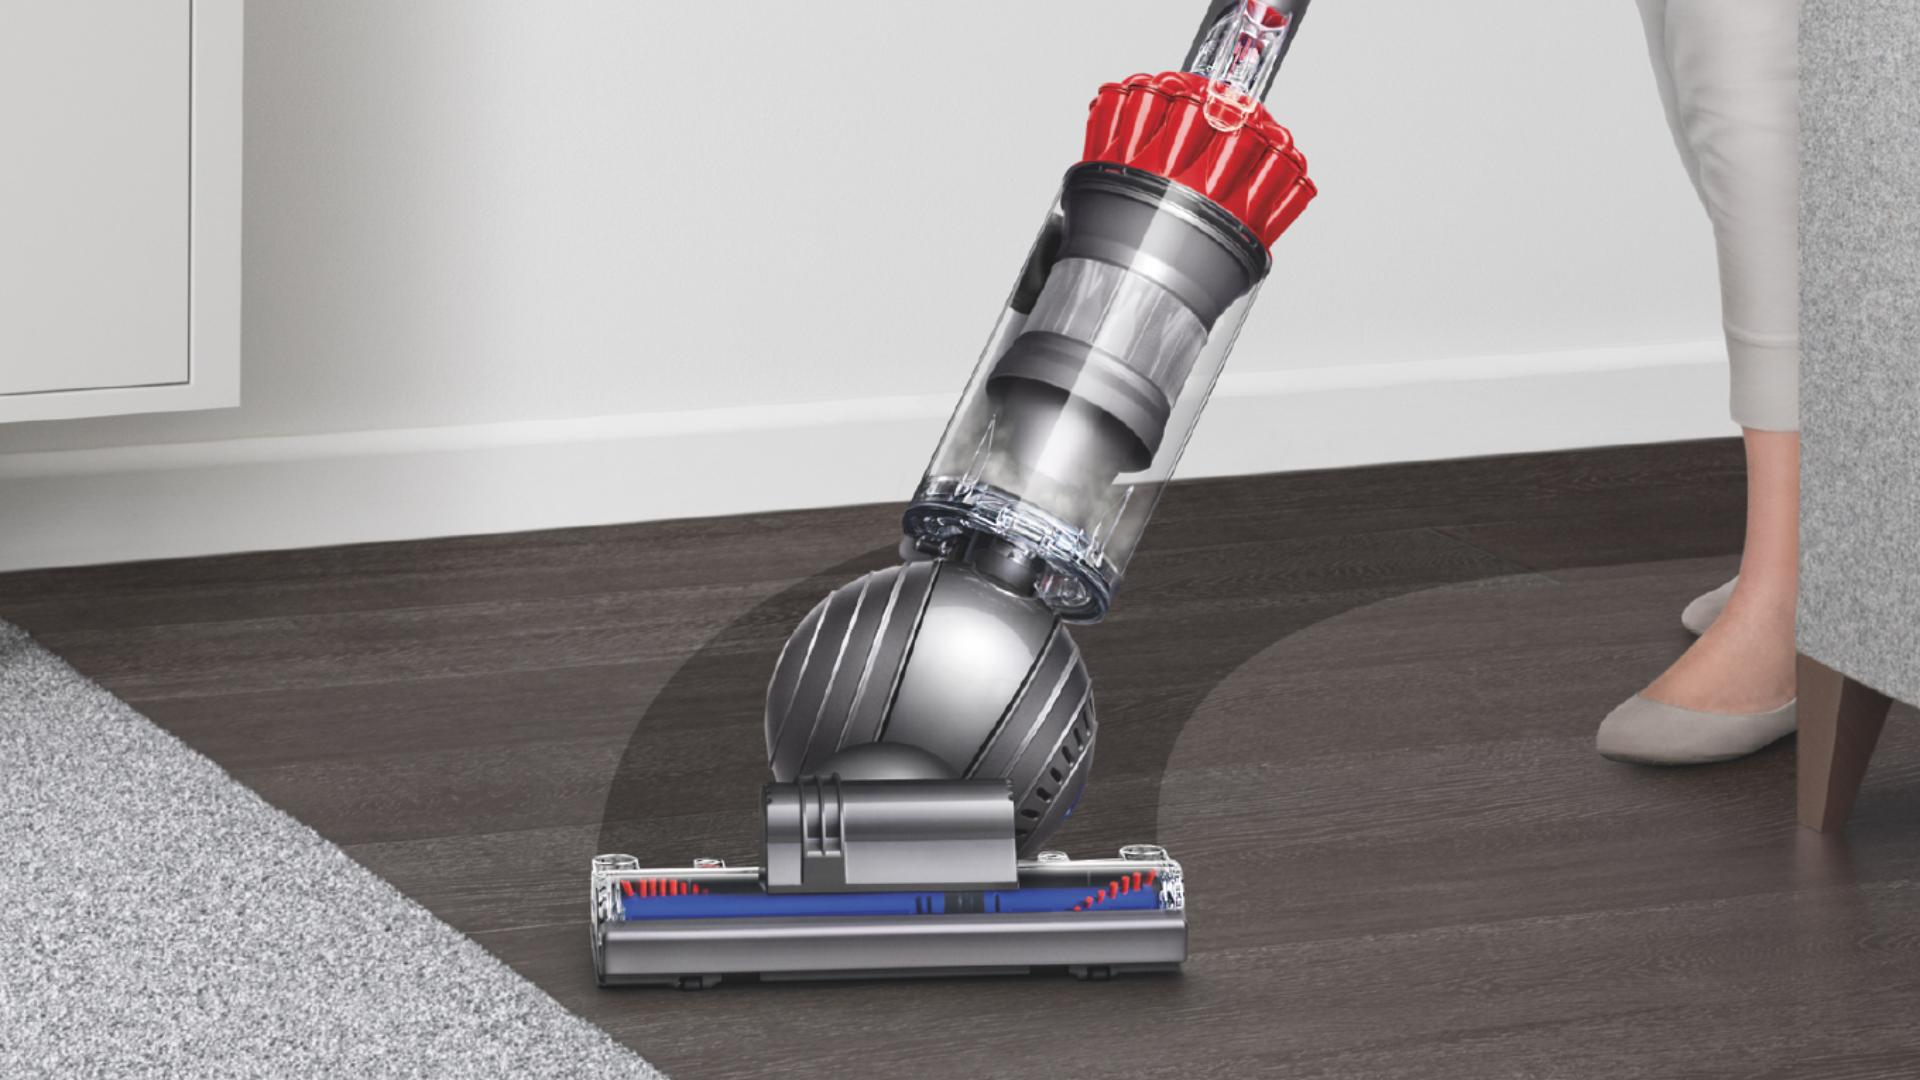 Upright vacuum cleaner being steered in a sweeping arc across a black hard floor surface.